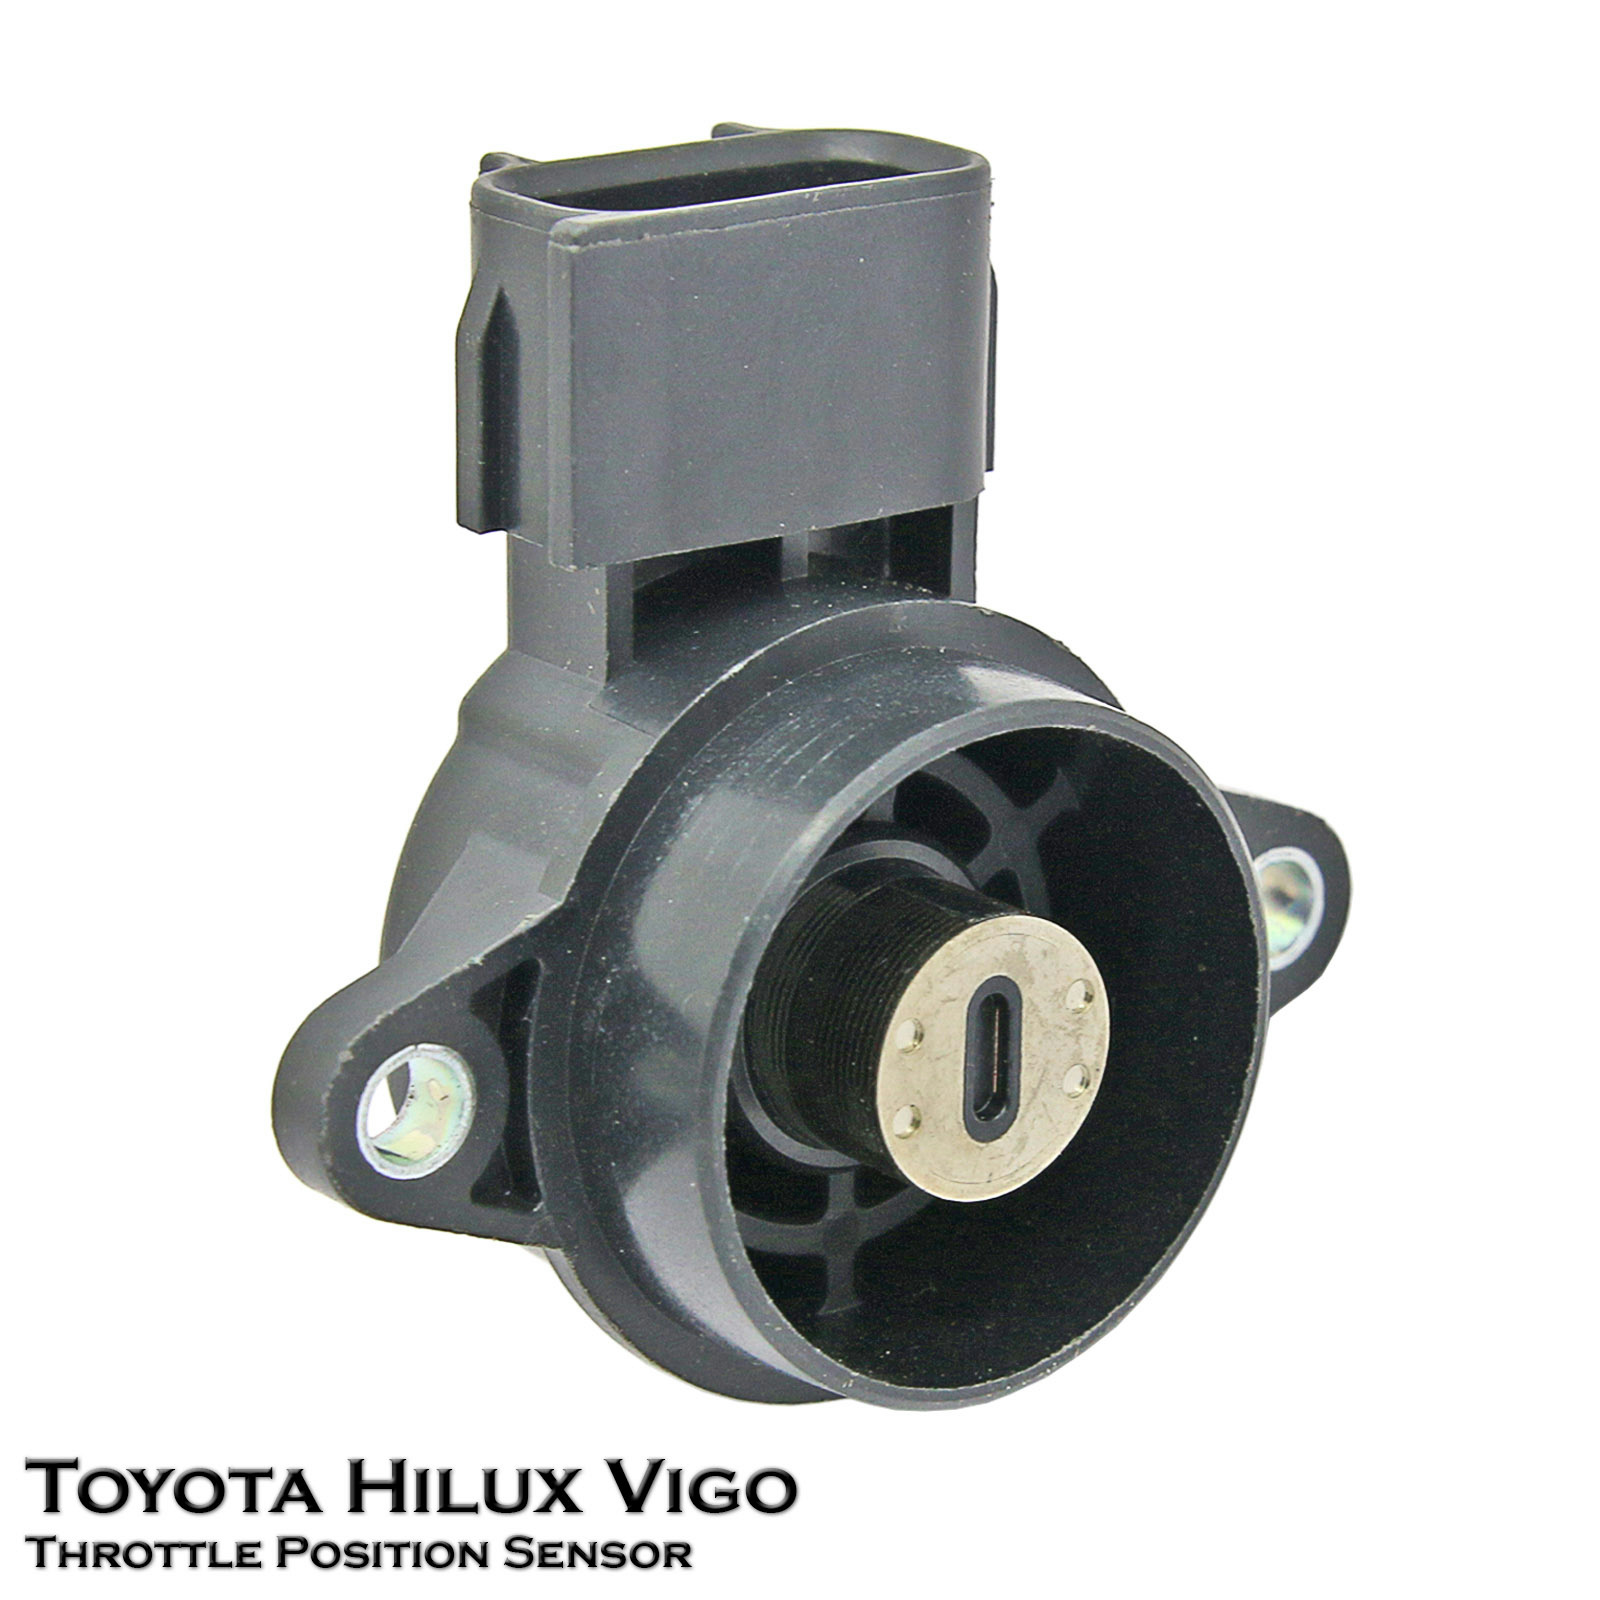 Throttle Position Sensor Toyota Hilux: Throttle Body Position Sensor Fit For Toyota Hilux Vigo